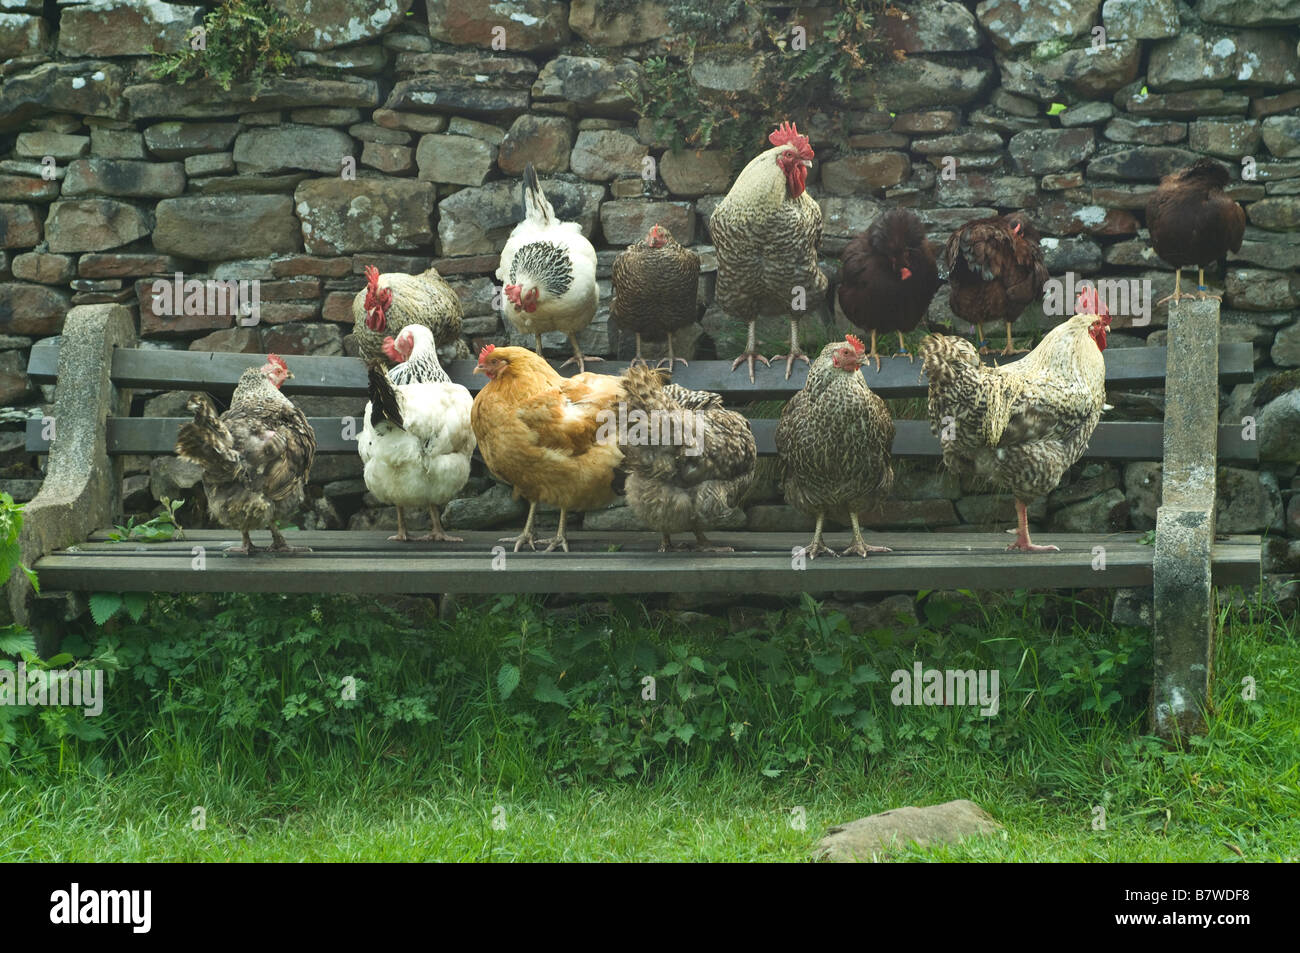 Cockerels and Chickens sitting in a row on a bench in Cumbria - Stock Image